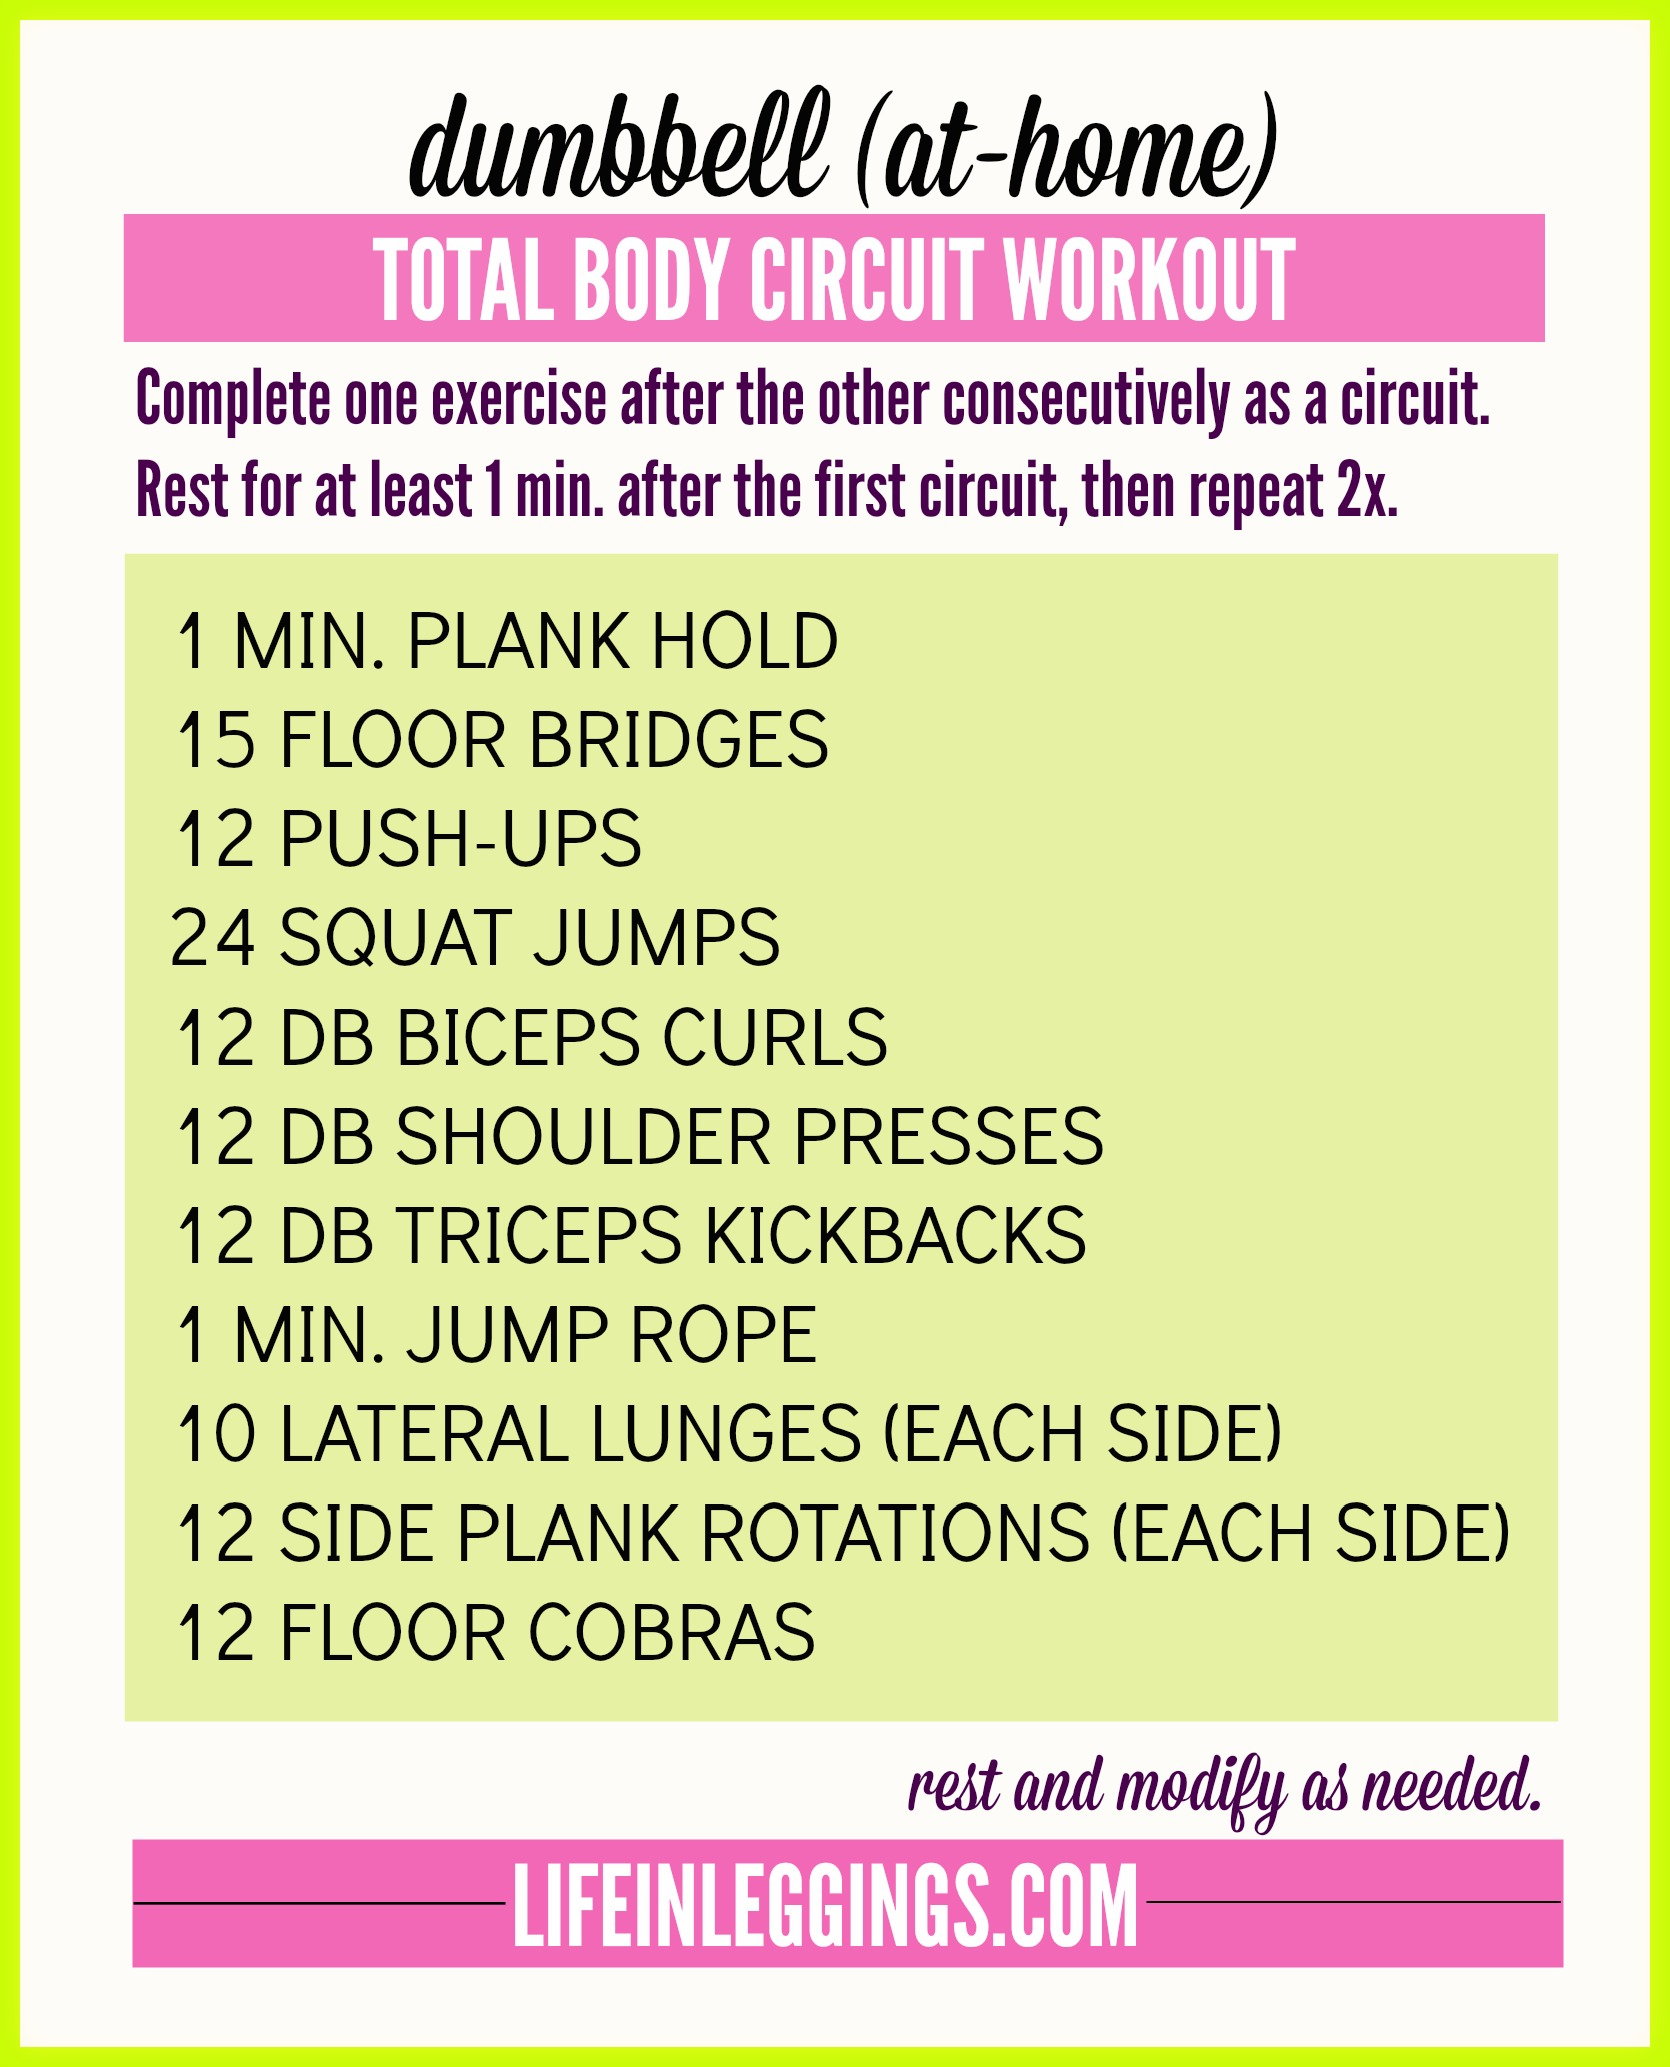 dumbbell at-home total body circuit